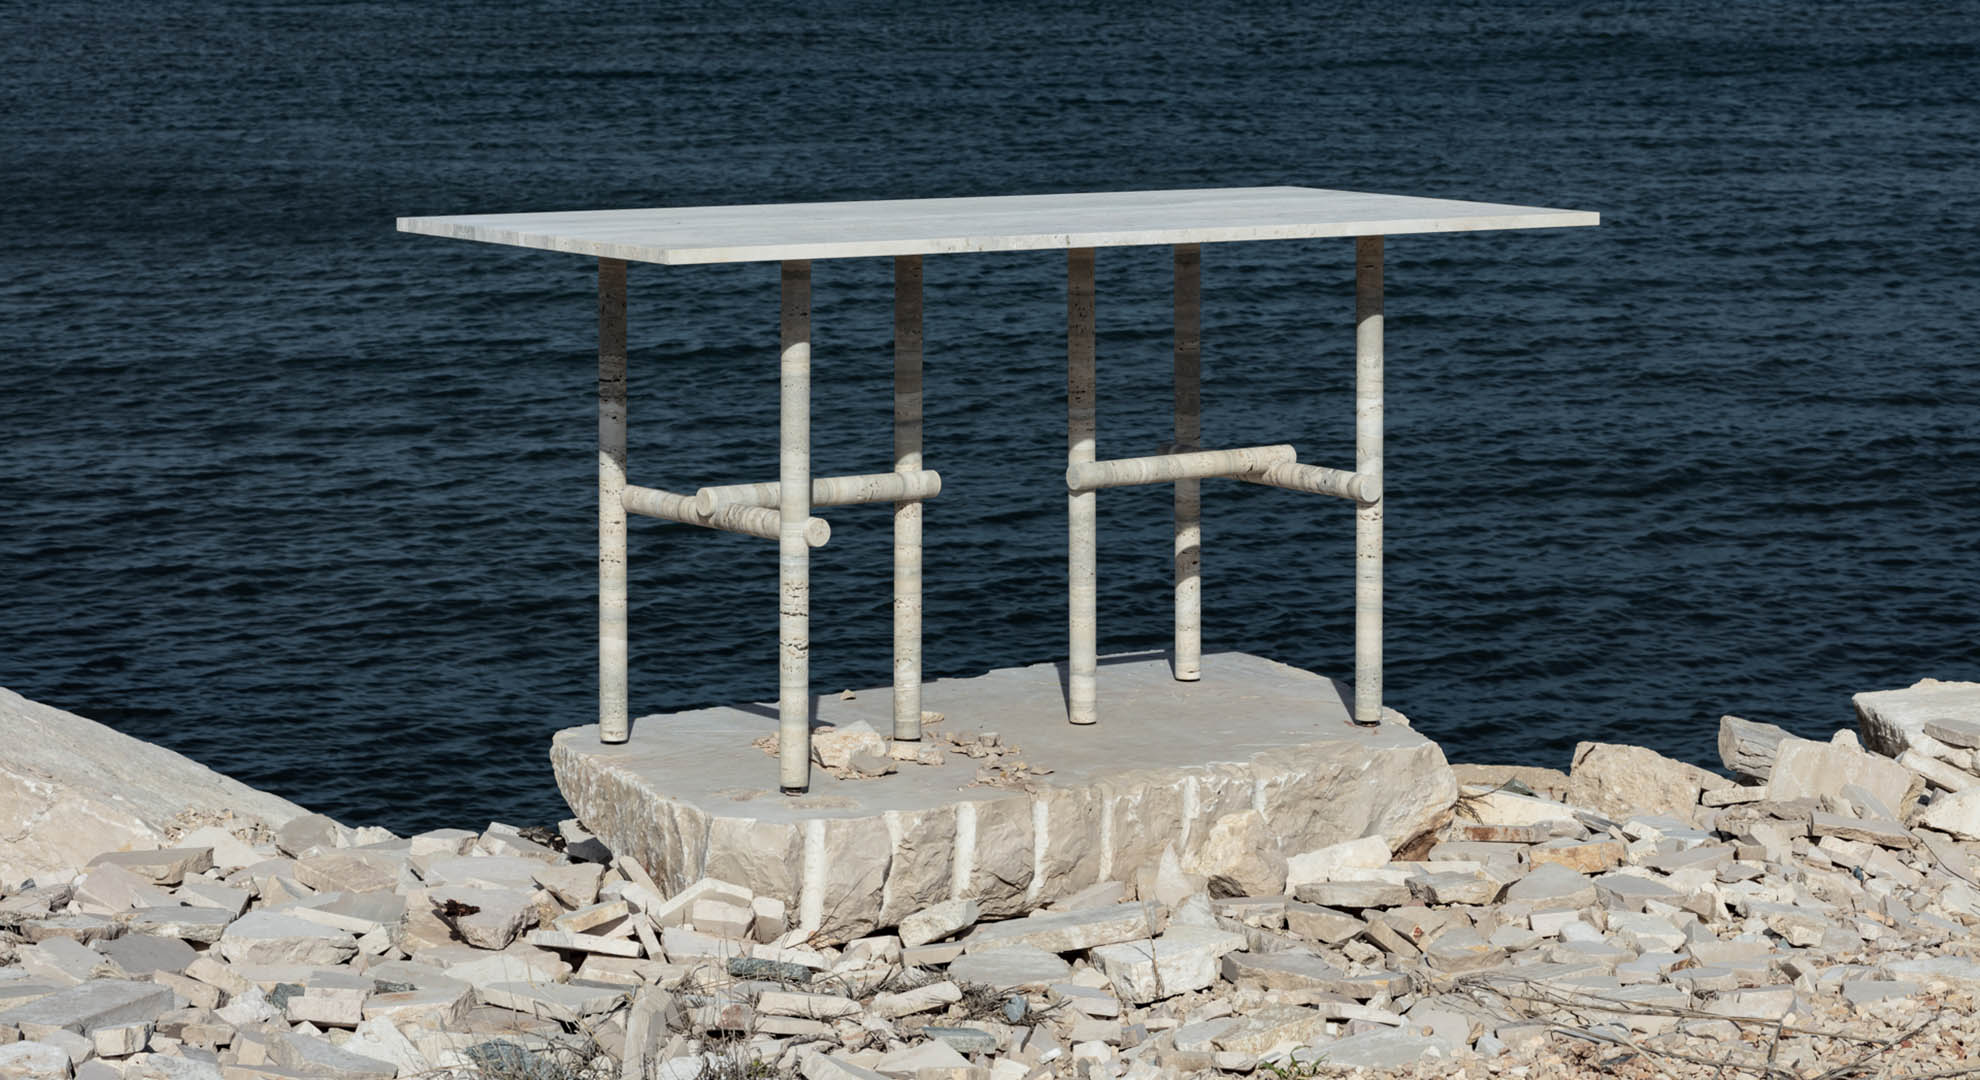 Ocean artwork. Travertine table by Clément Brazille